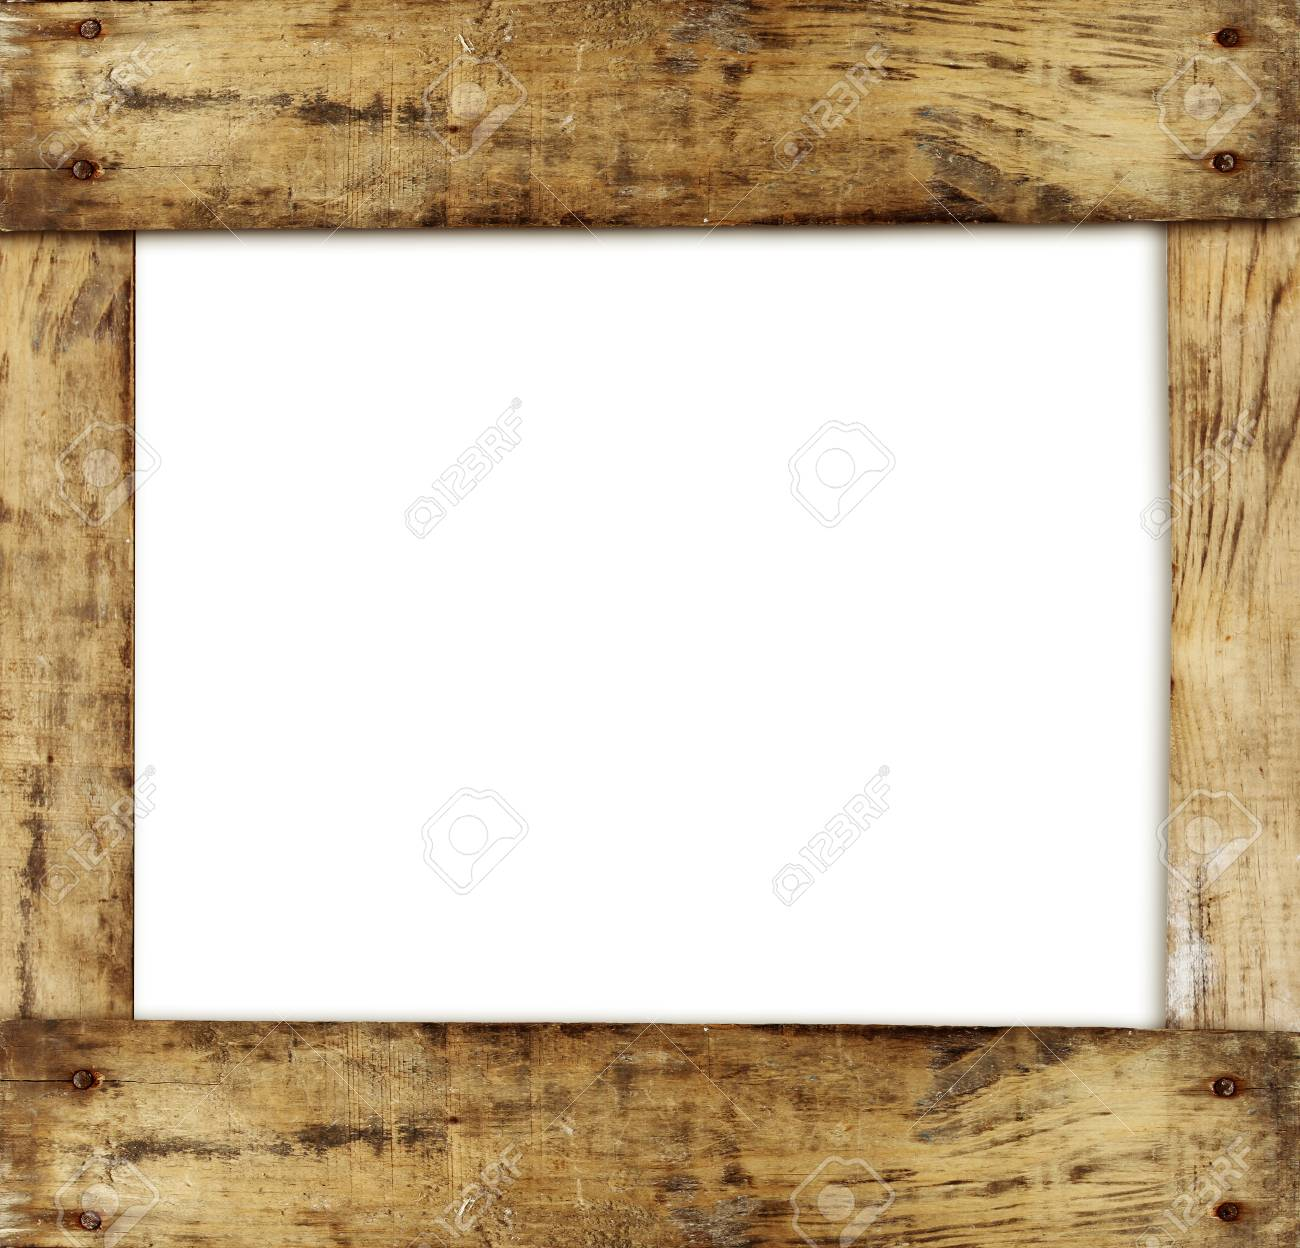 wooden frame on plain background stock photo picture and royalty